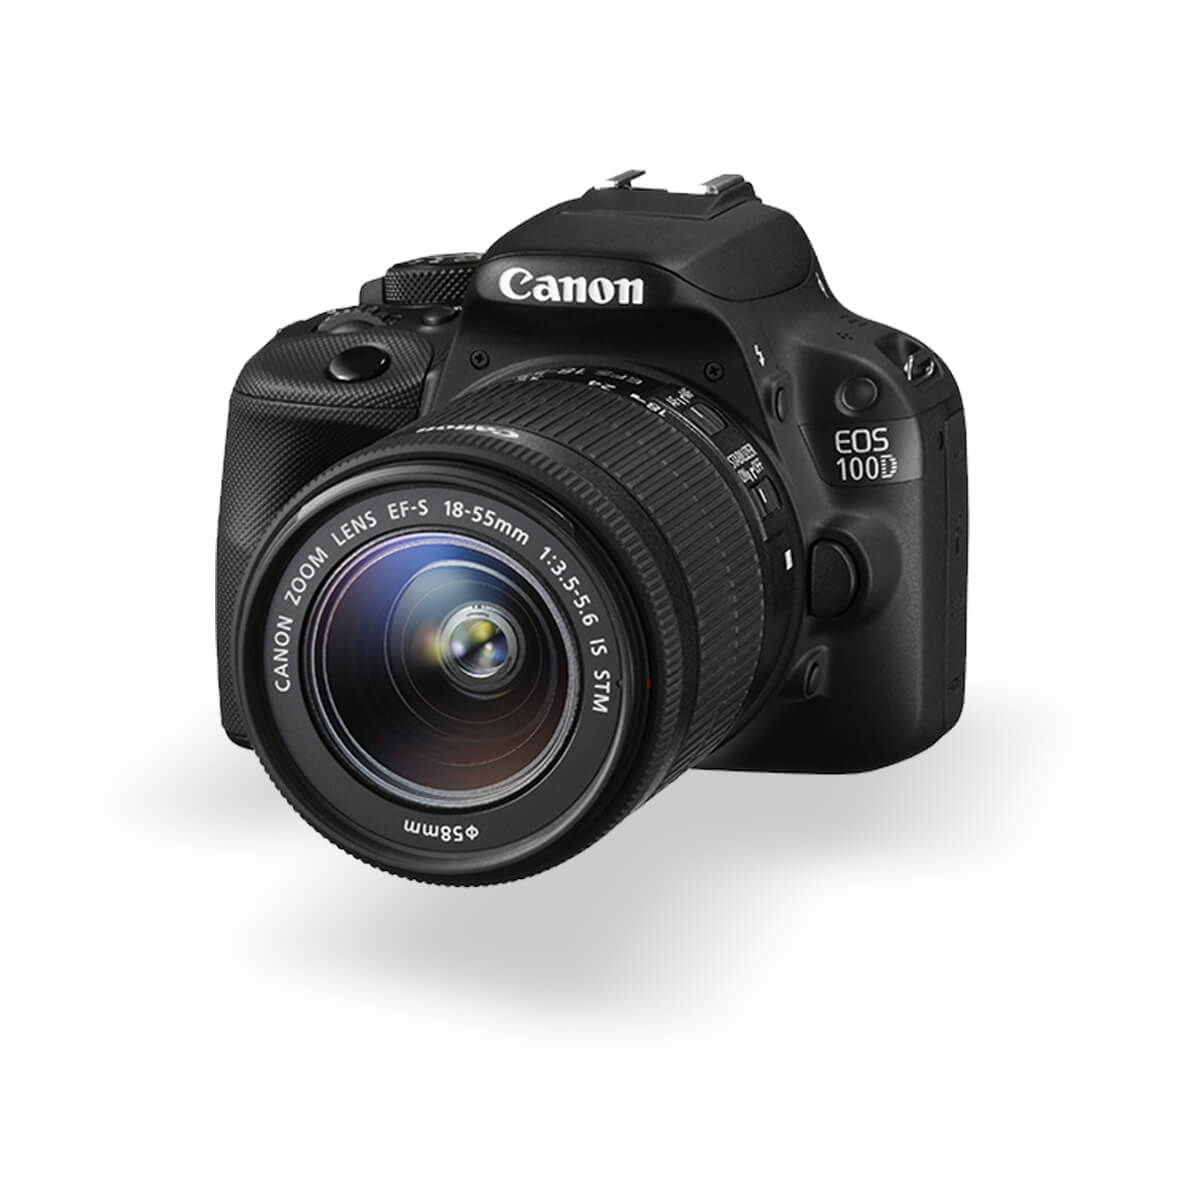 Canon EOS 100D DSLR camera